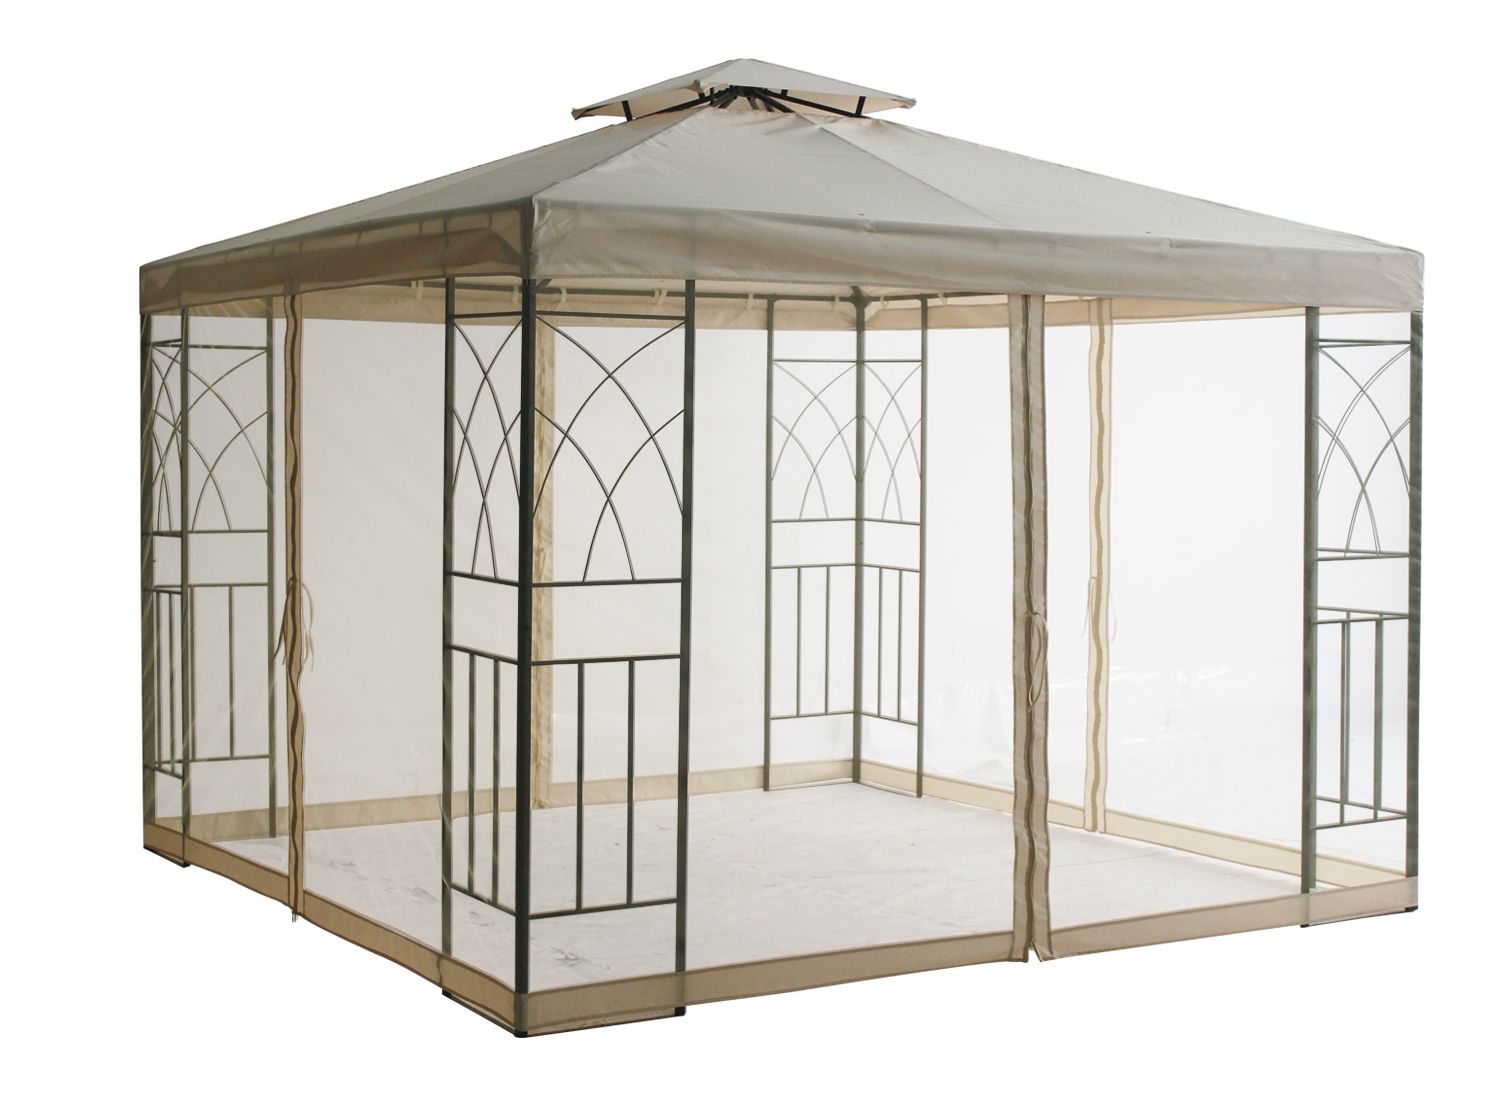 Metal gazebo awning canopy sun shade shelter pavilion - Insect netting for gazebo ...